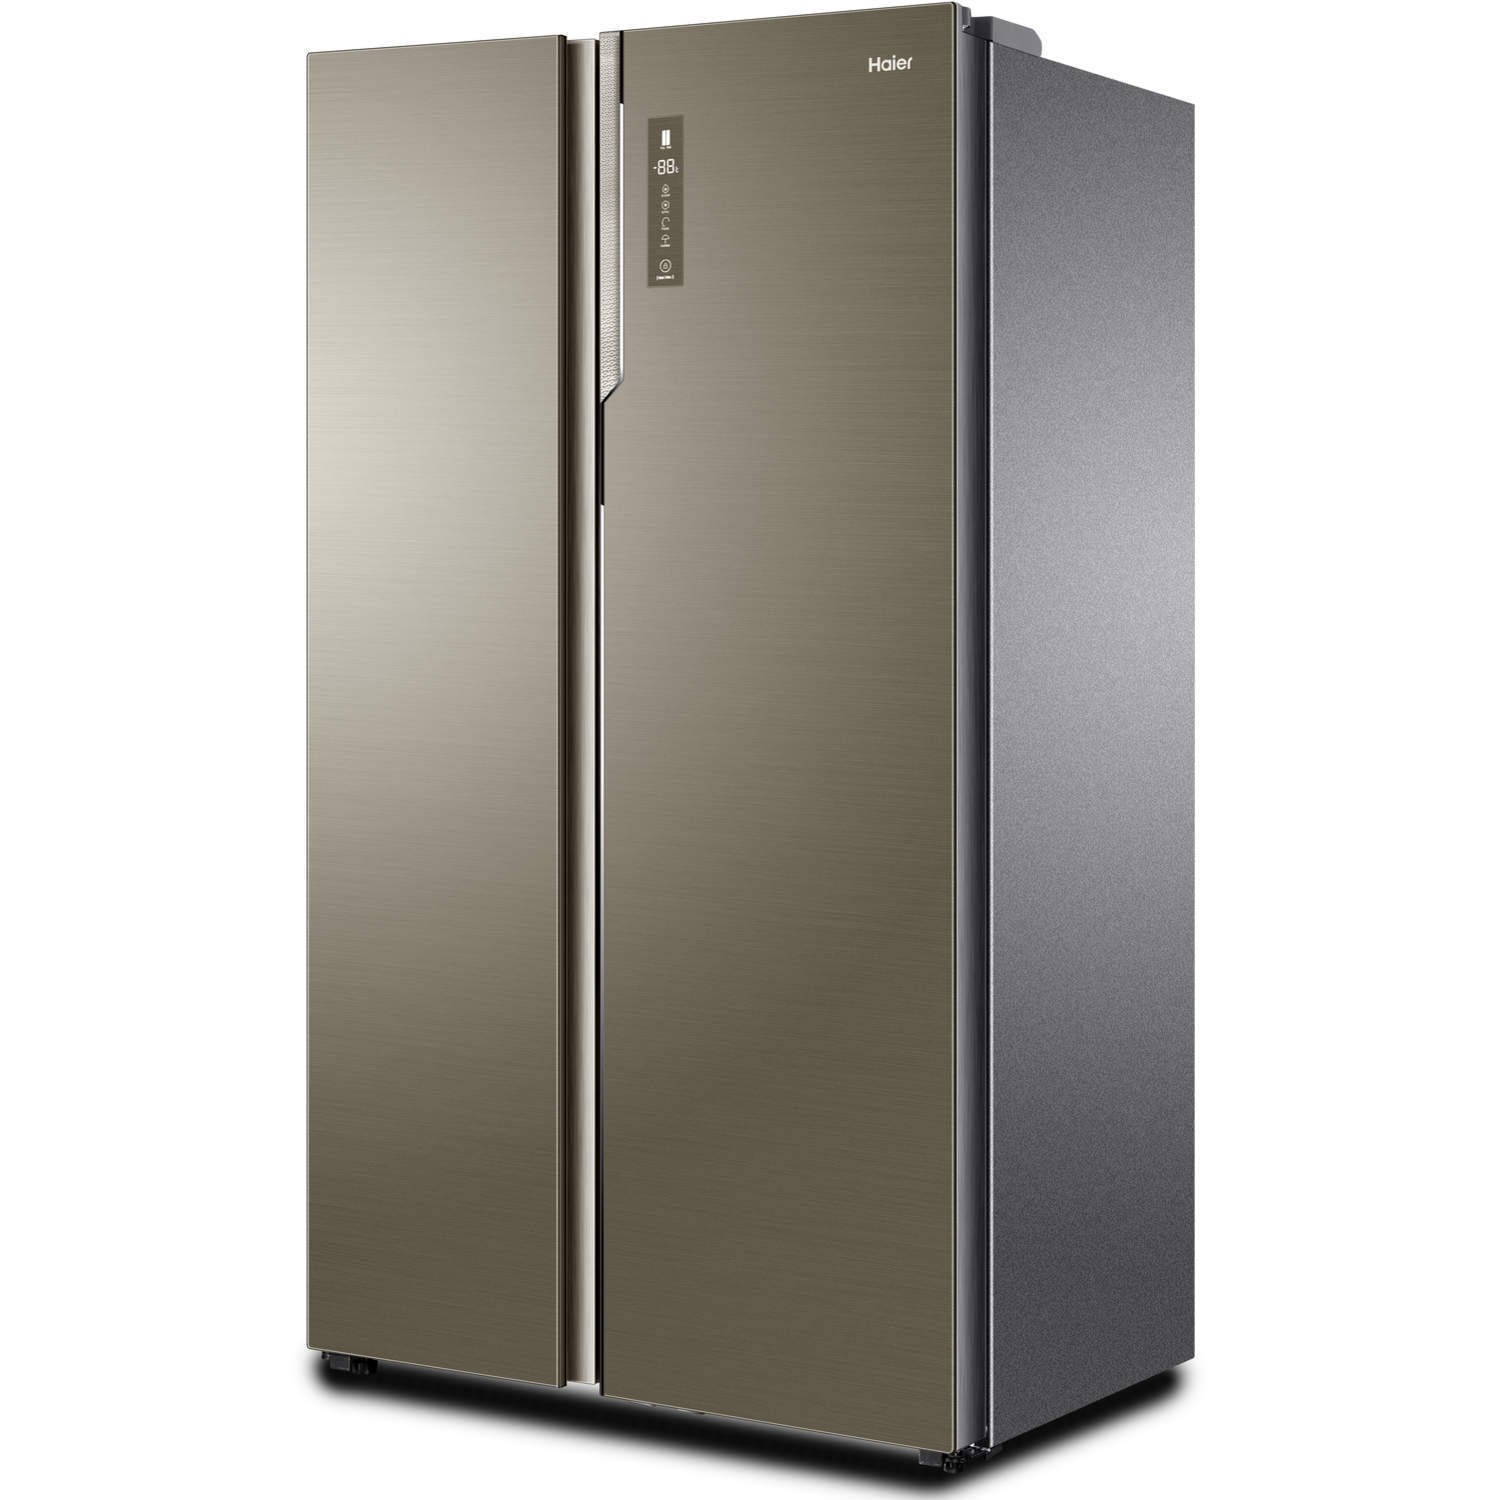 haier hrf800dgs8 2 door ultra efficient side by side american fridge hrf800dgs8 6901018053337 ebay. Black Bedroom Furniture Sets. Home Design Ideas